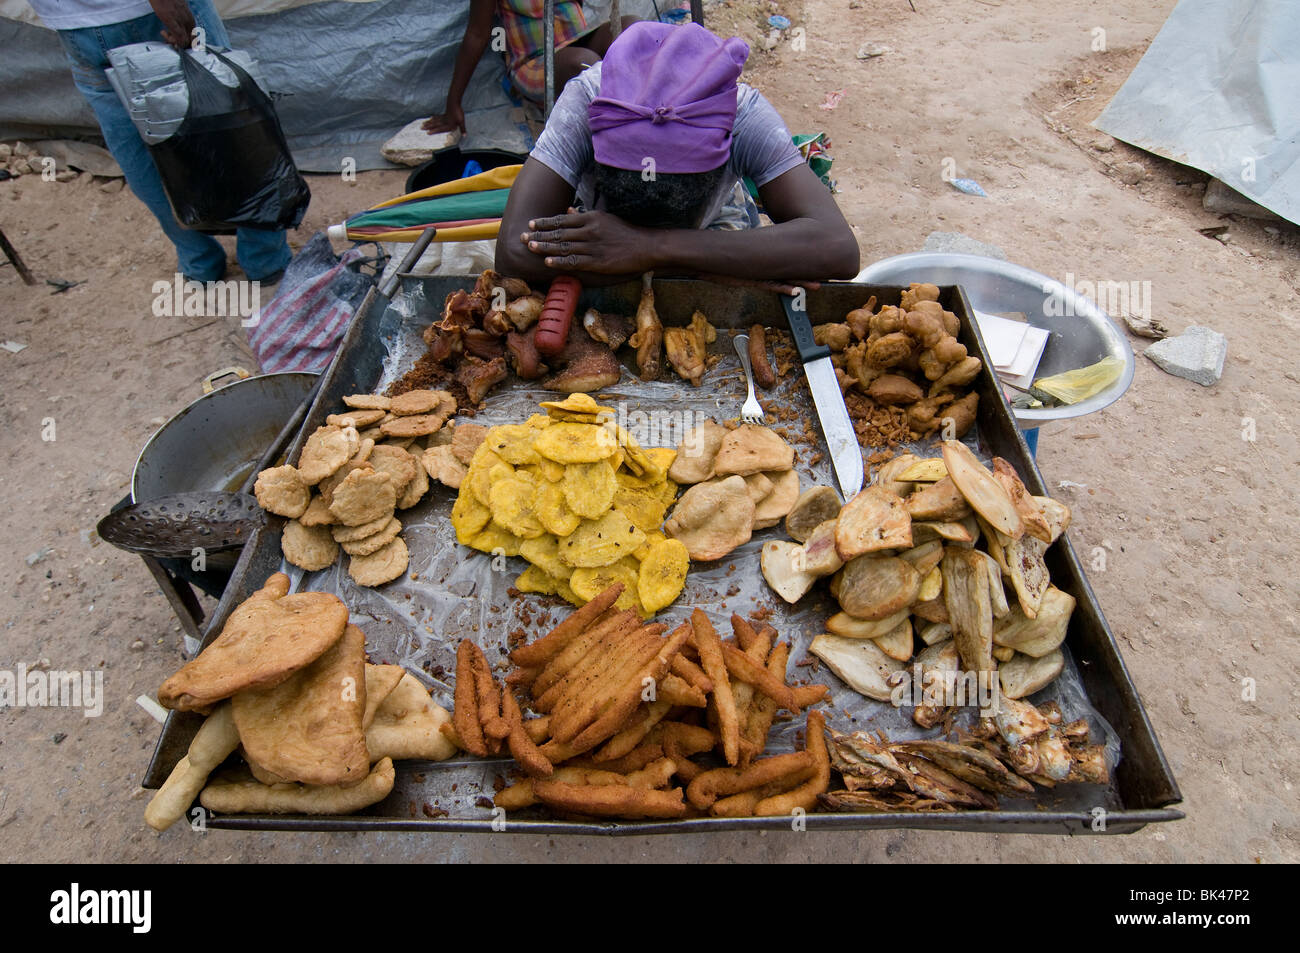 haiti food street stock photos haiti food street stock images alamy